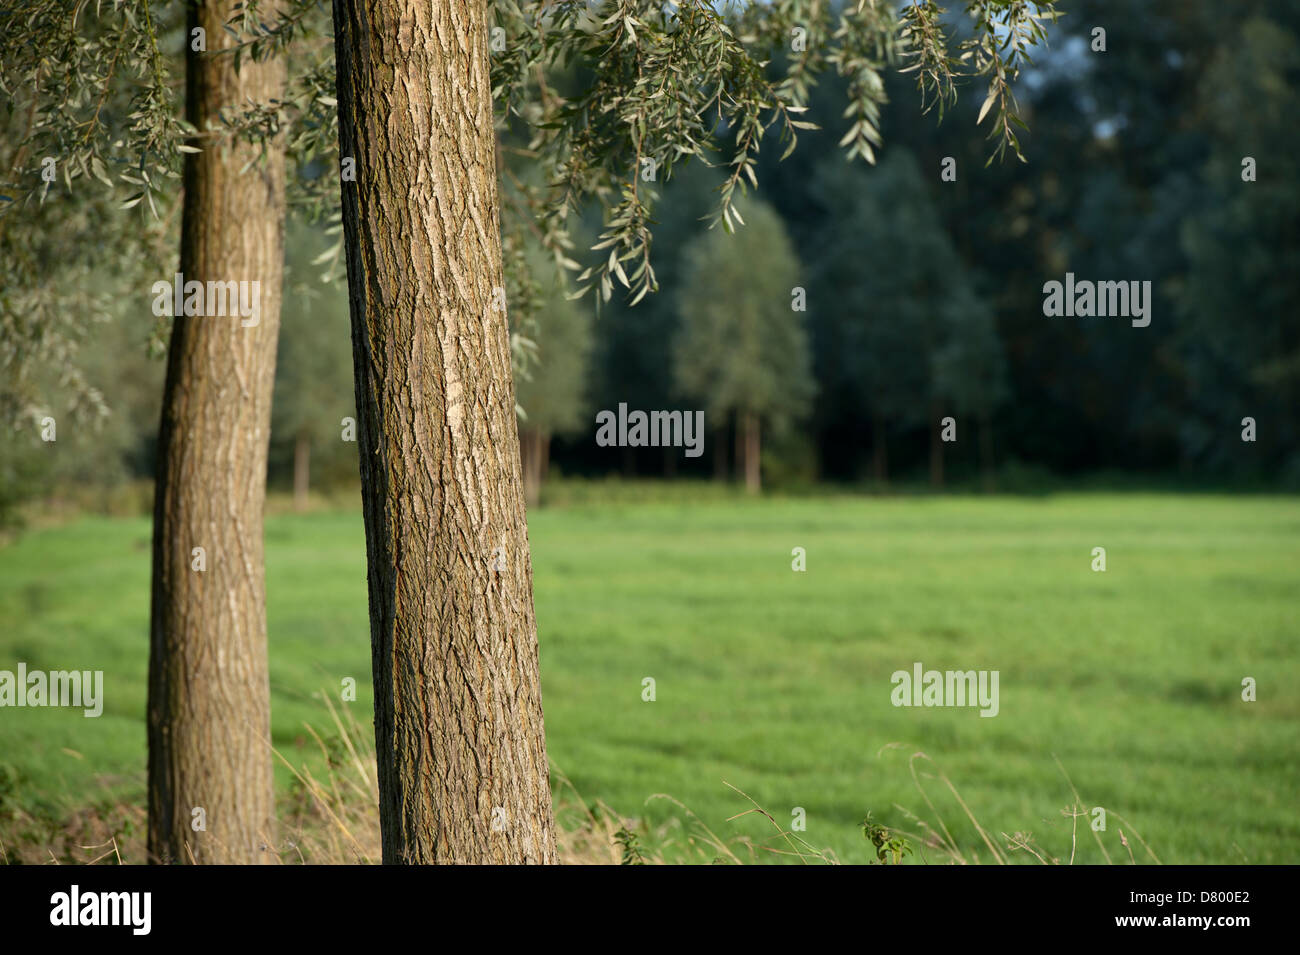 willow trees and field - Stock Image